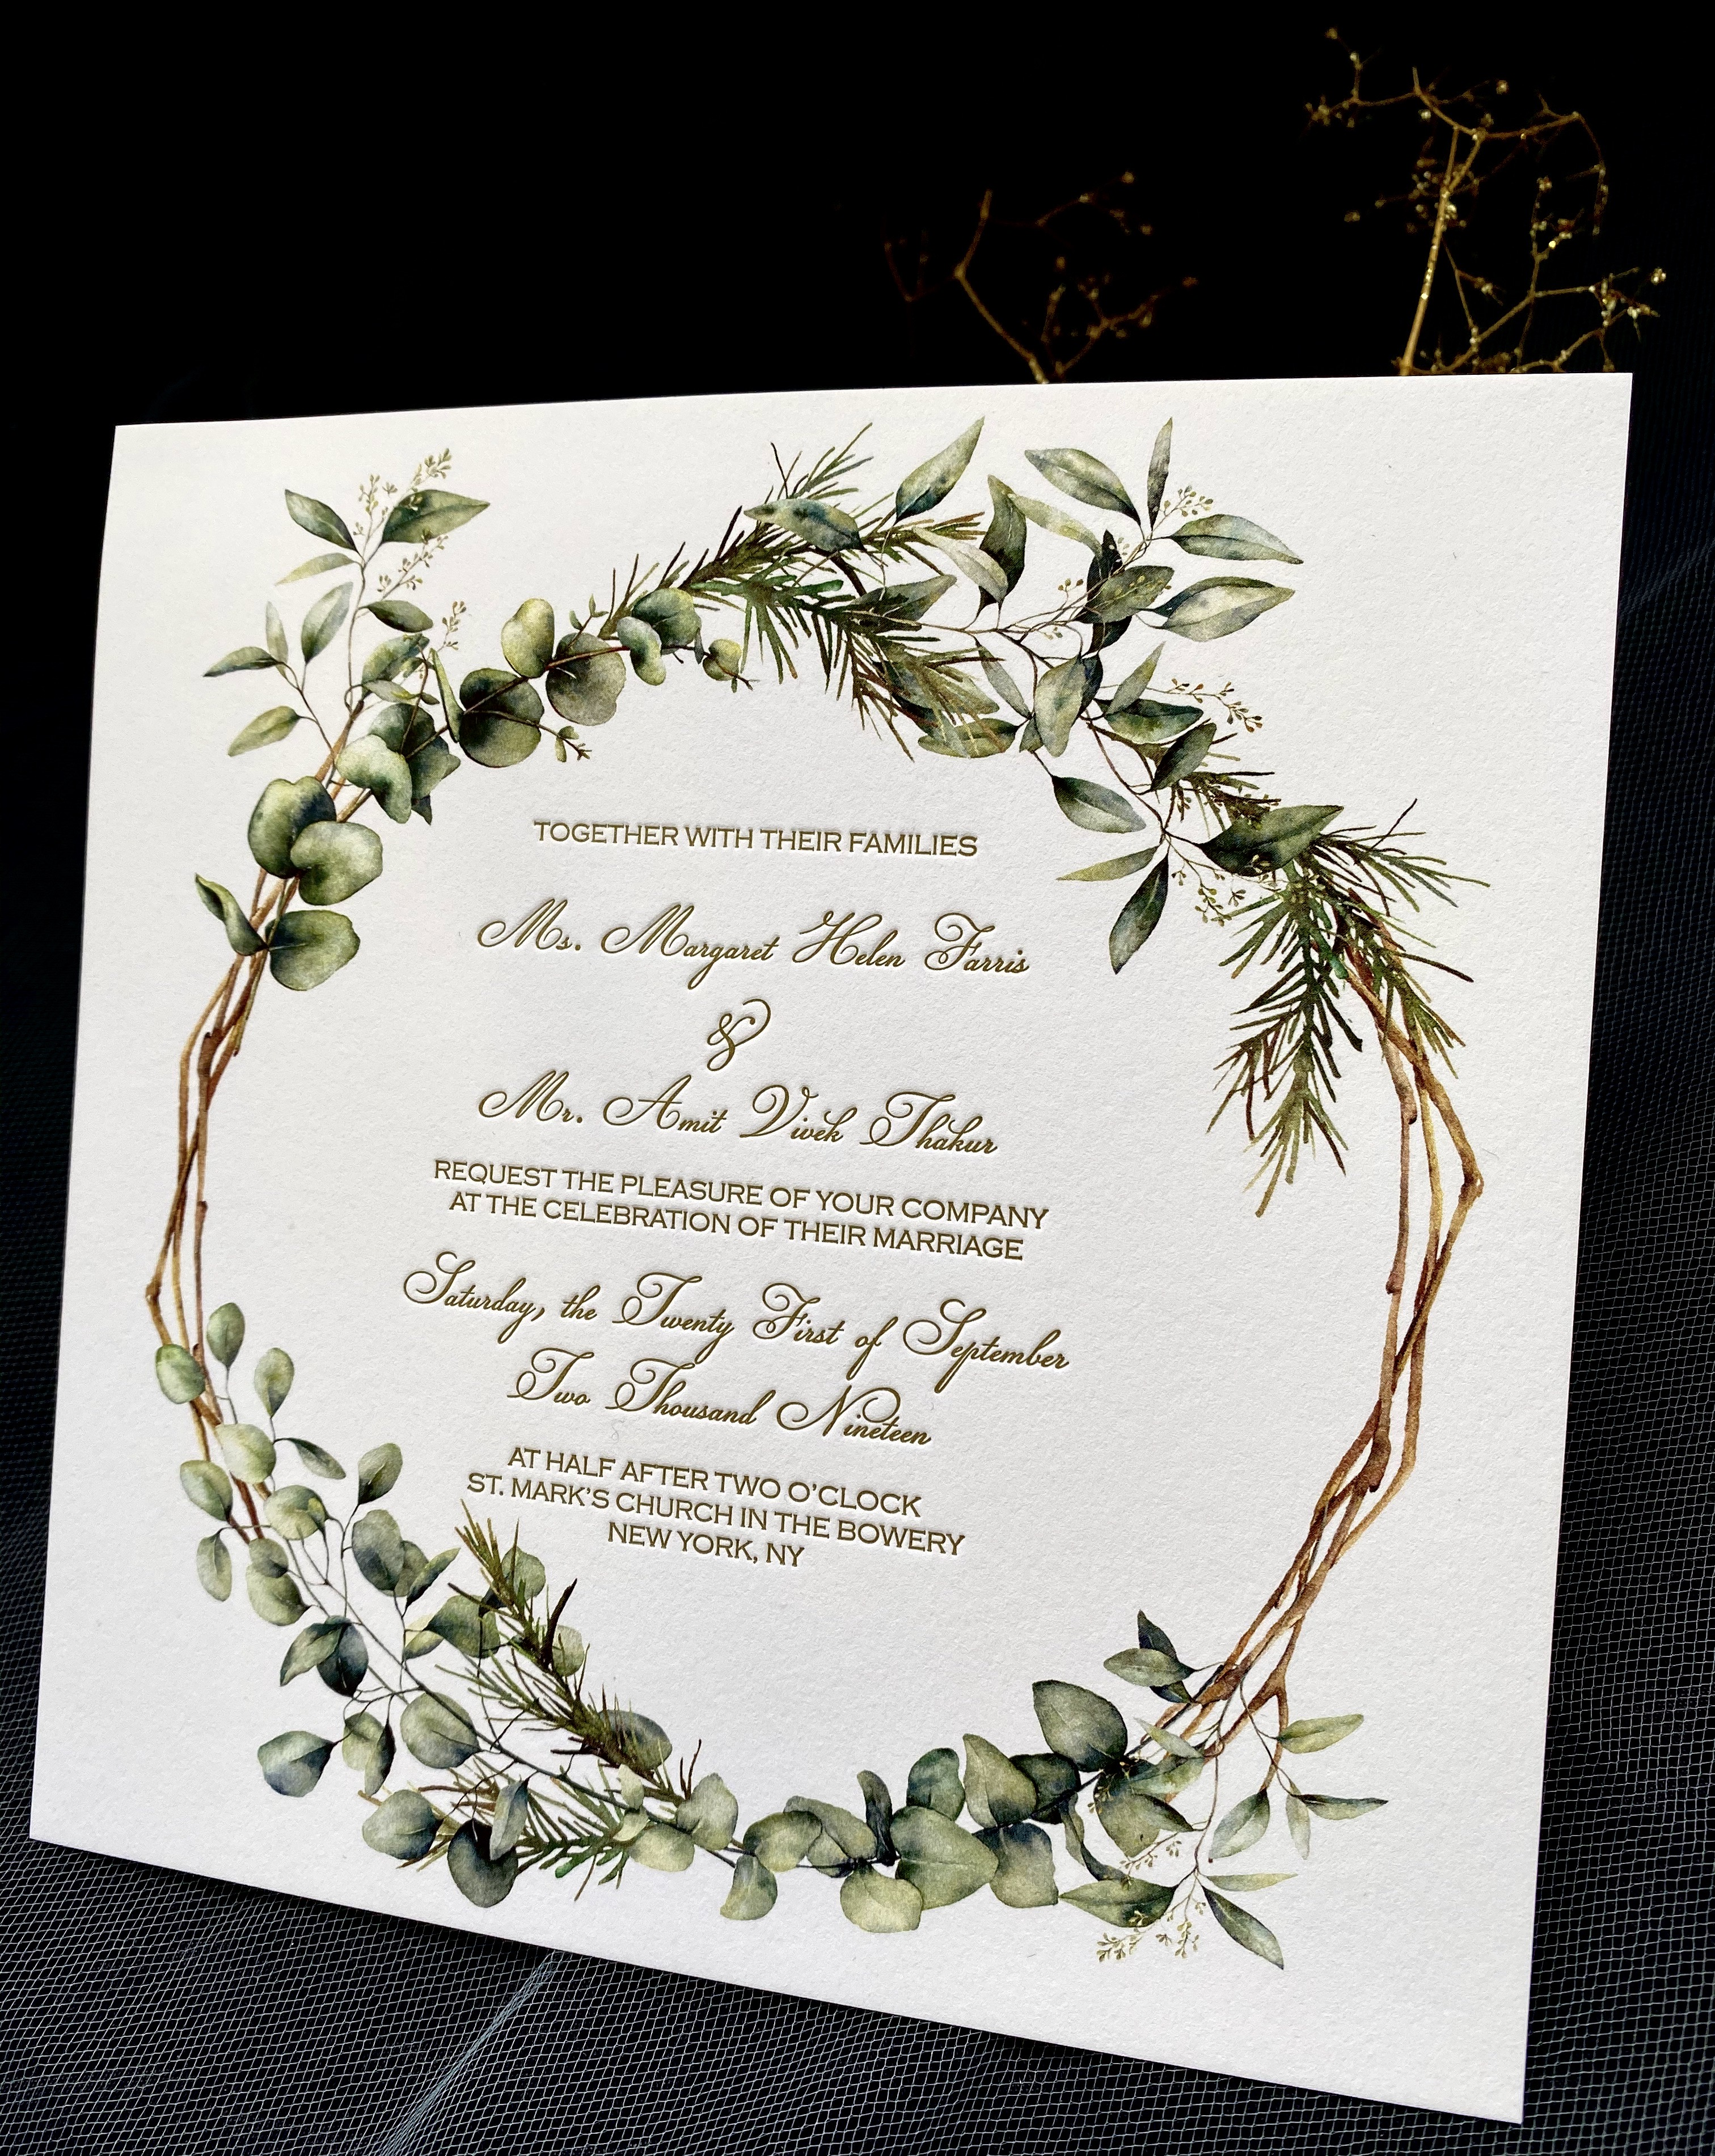 NYC affordable invitations in NYC